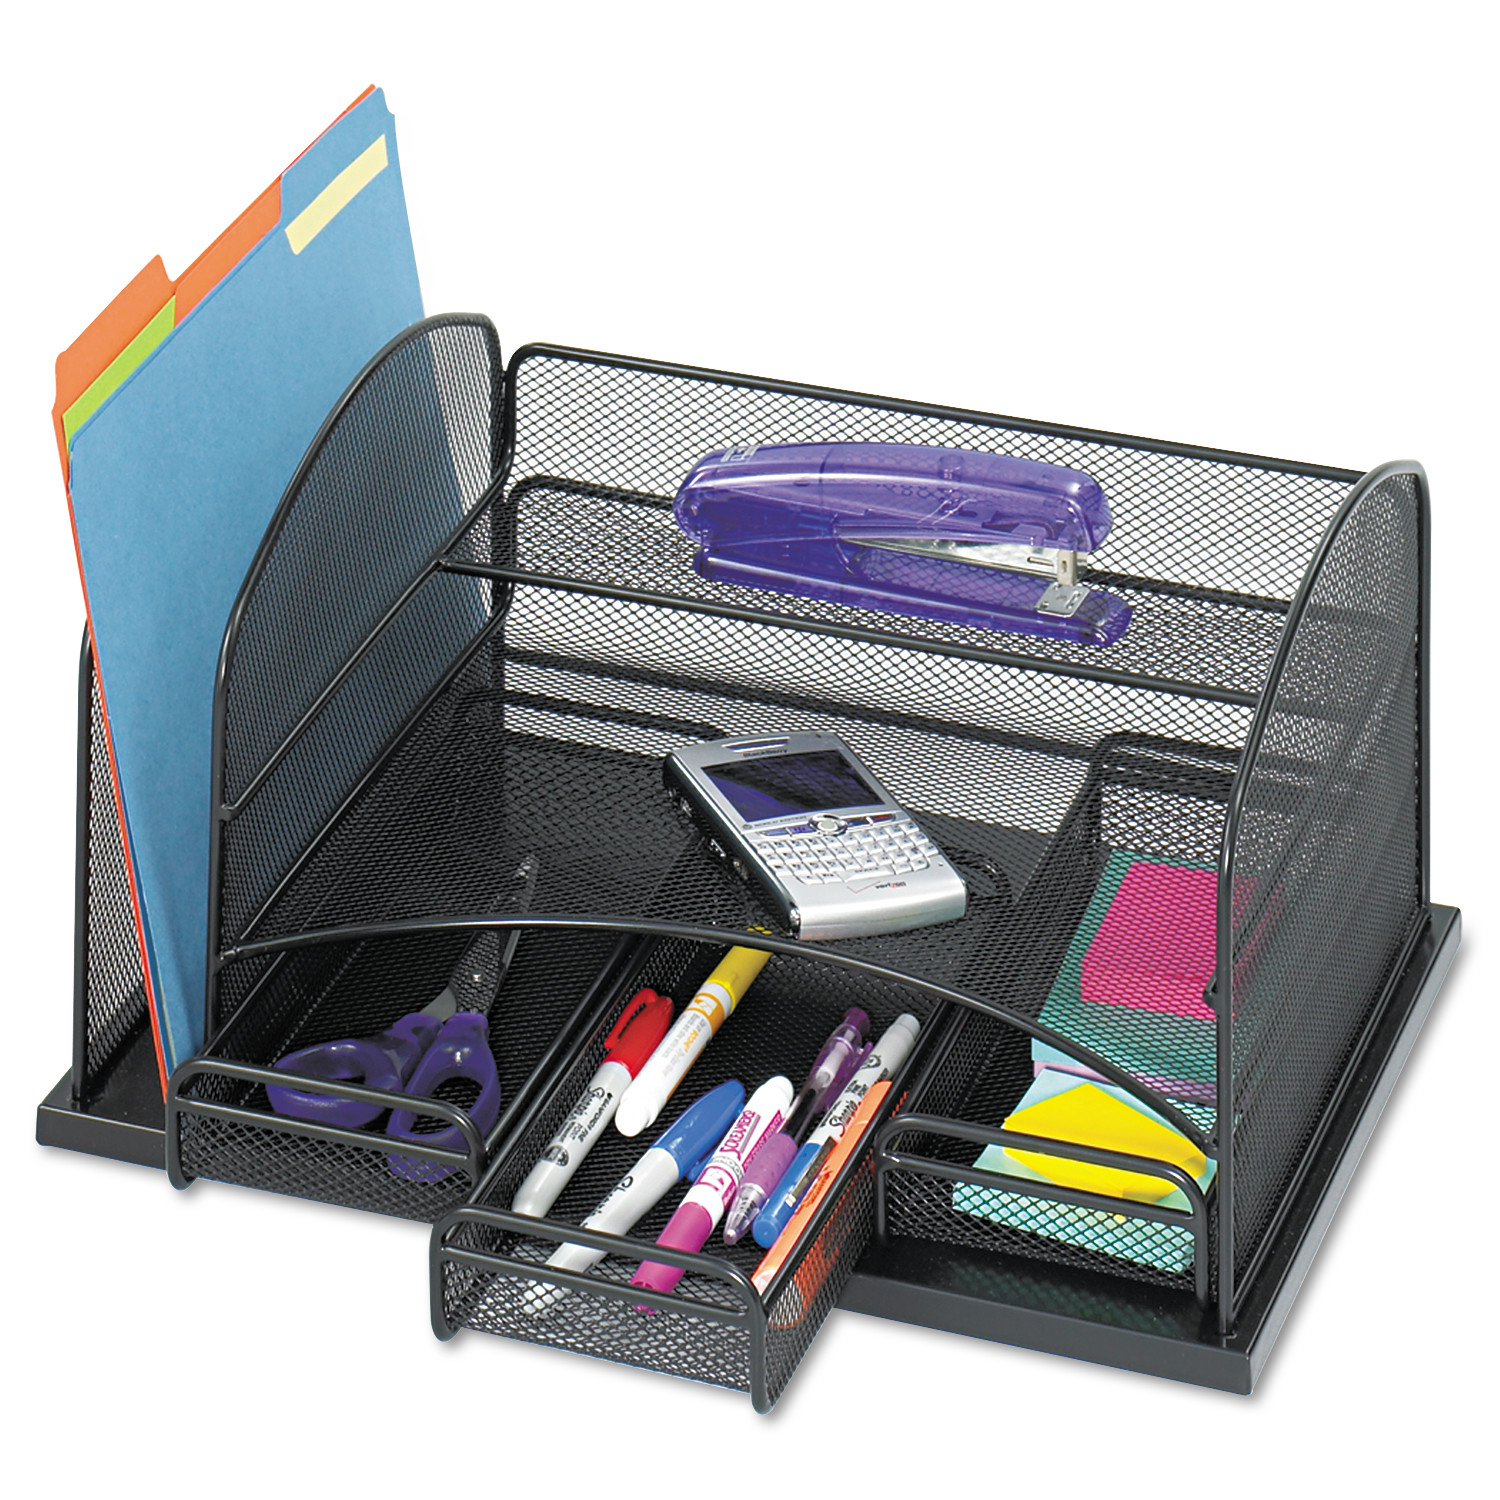 Rubbermaid 12 Slot Organizer Mdf Desktop Sorter Black